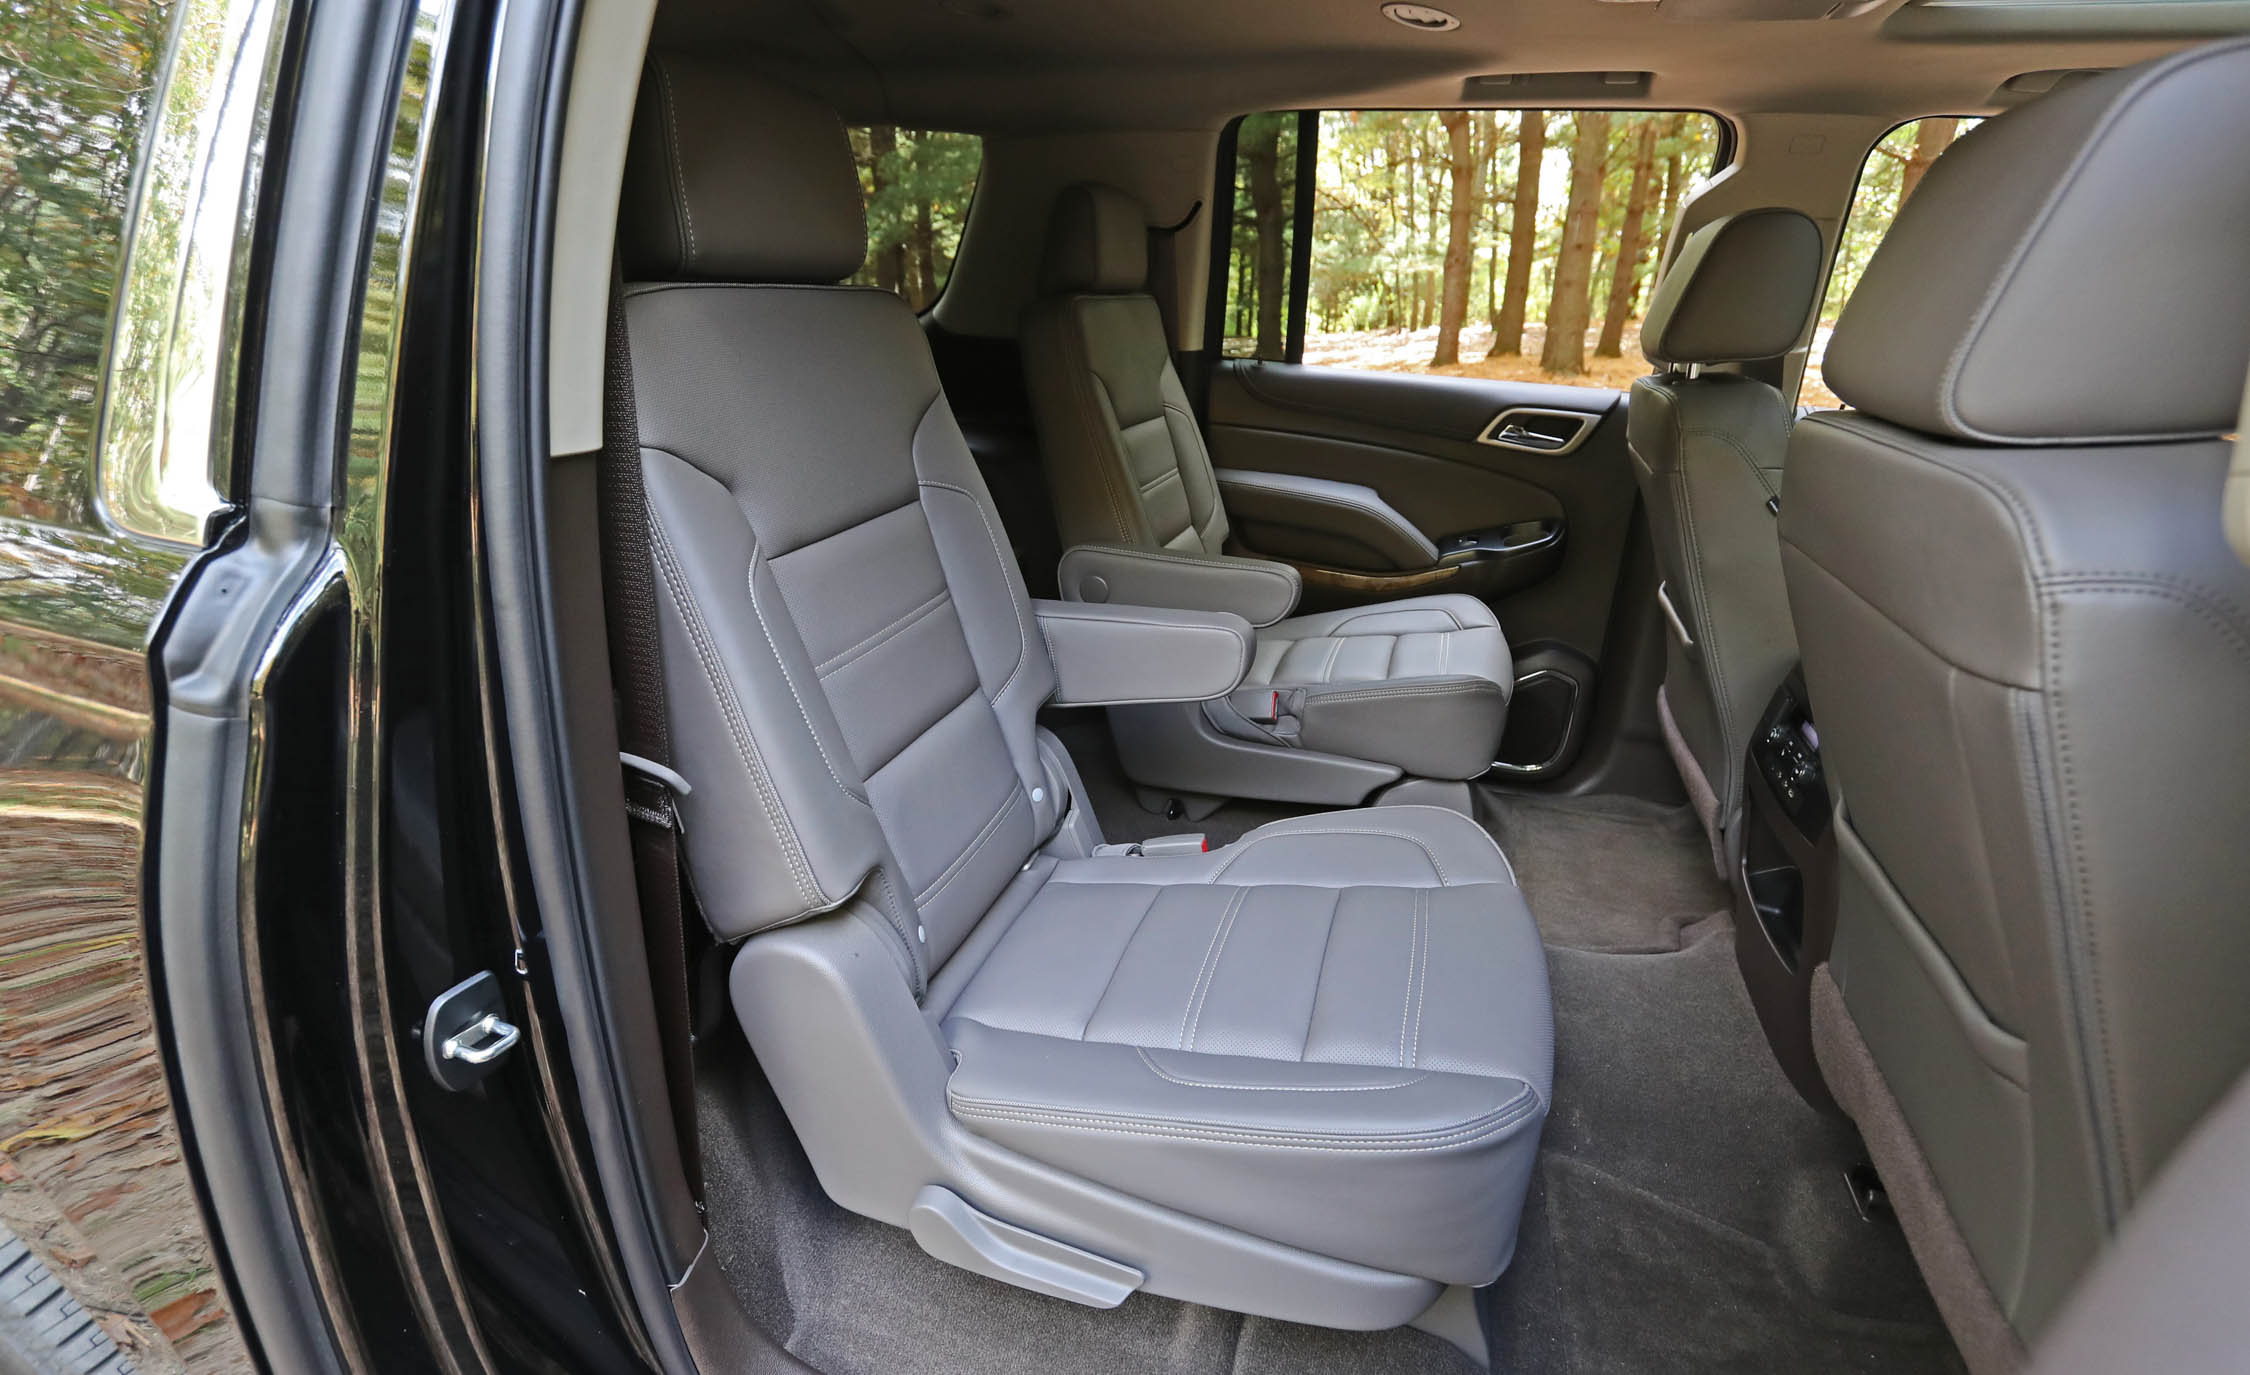 2017 Gmc Yukon Xl Denali Interior Seats Rear Back 2nd Passengers (Photo 9  Of 26